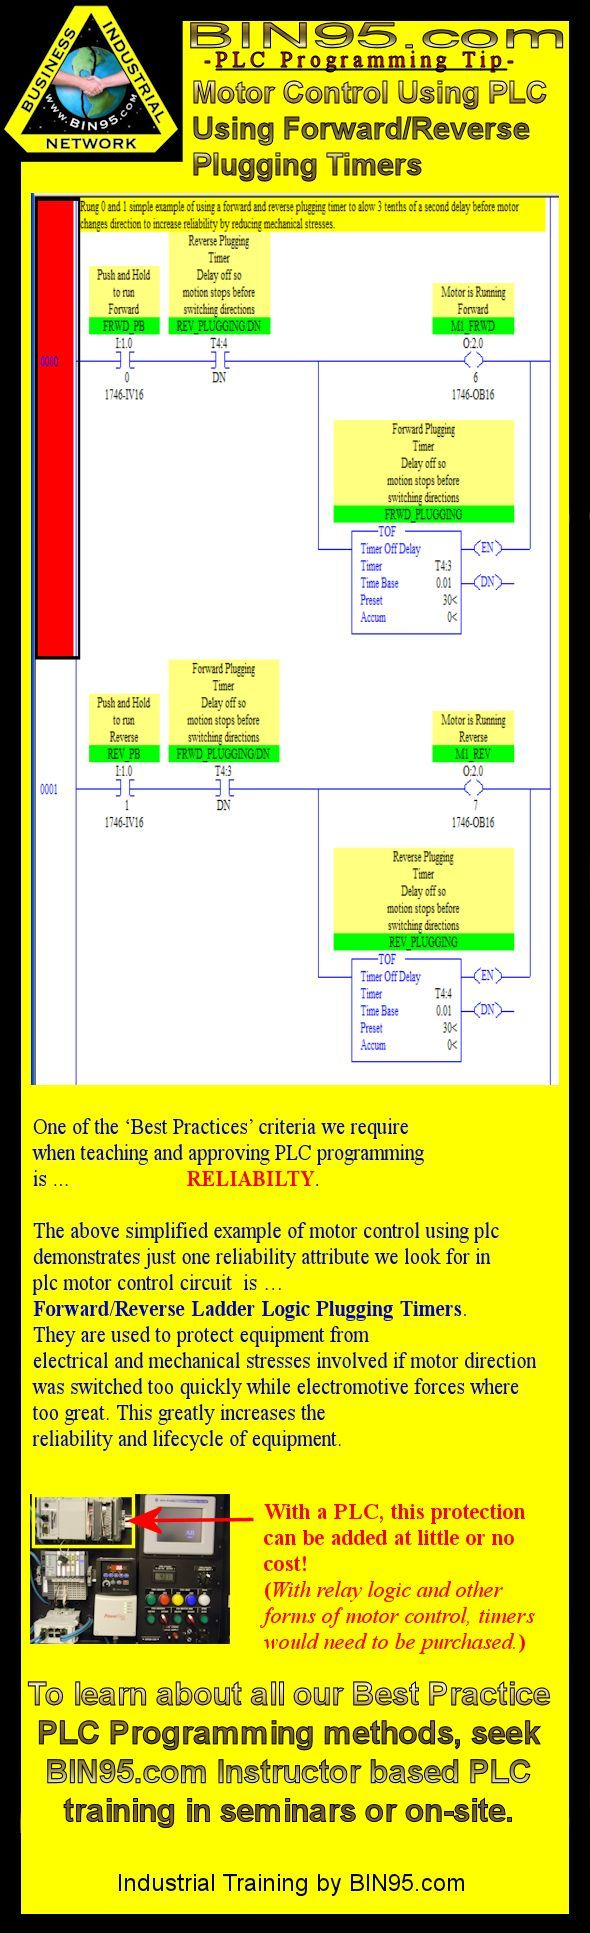 One of the 'Best Practices' criteria we require when teaching and approving PLC programming is RELIABILITY.  http://bin95.com/plc_training.htm The above simplified example of motor control using plc  demonstrates just one reliability attribute we look for in   plc motor control circuit  is …  Forward/Reverse Ladder Logic Plugging Timers. Increases the reliability by protecting equipment from electrical and mechanical stresses if motor direction is switched too quickly.